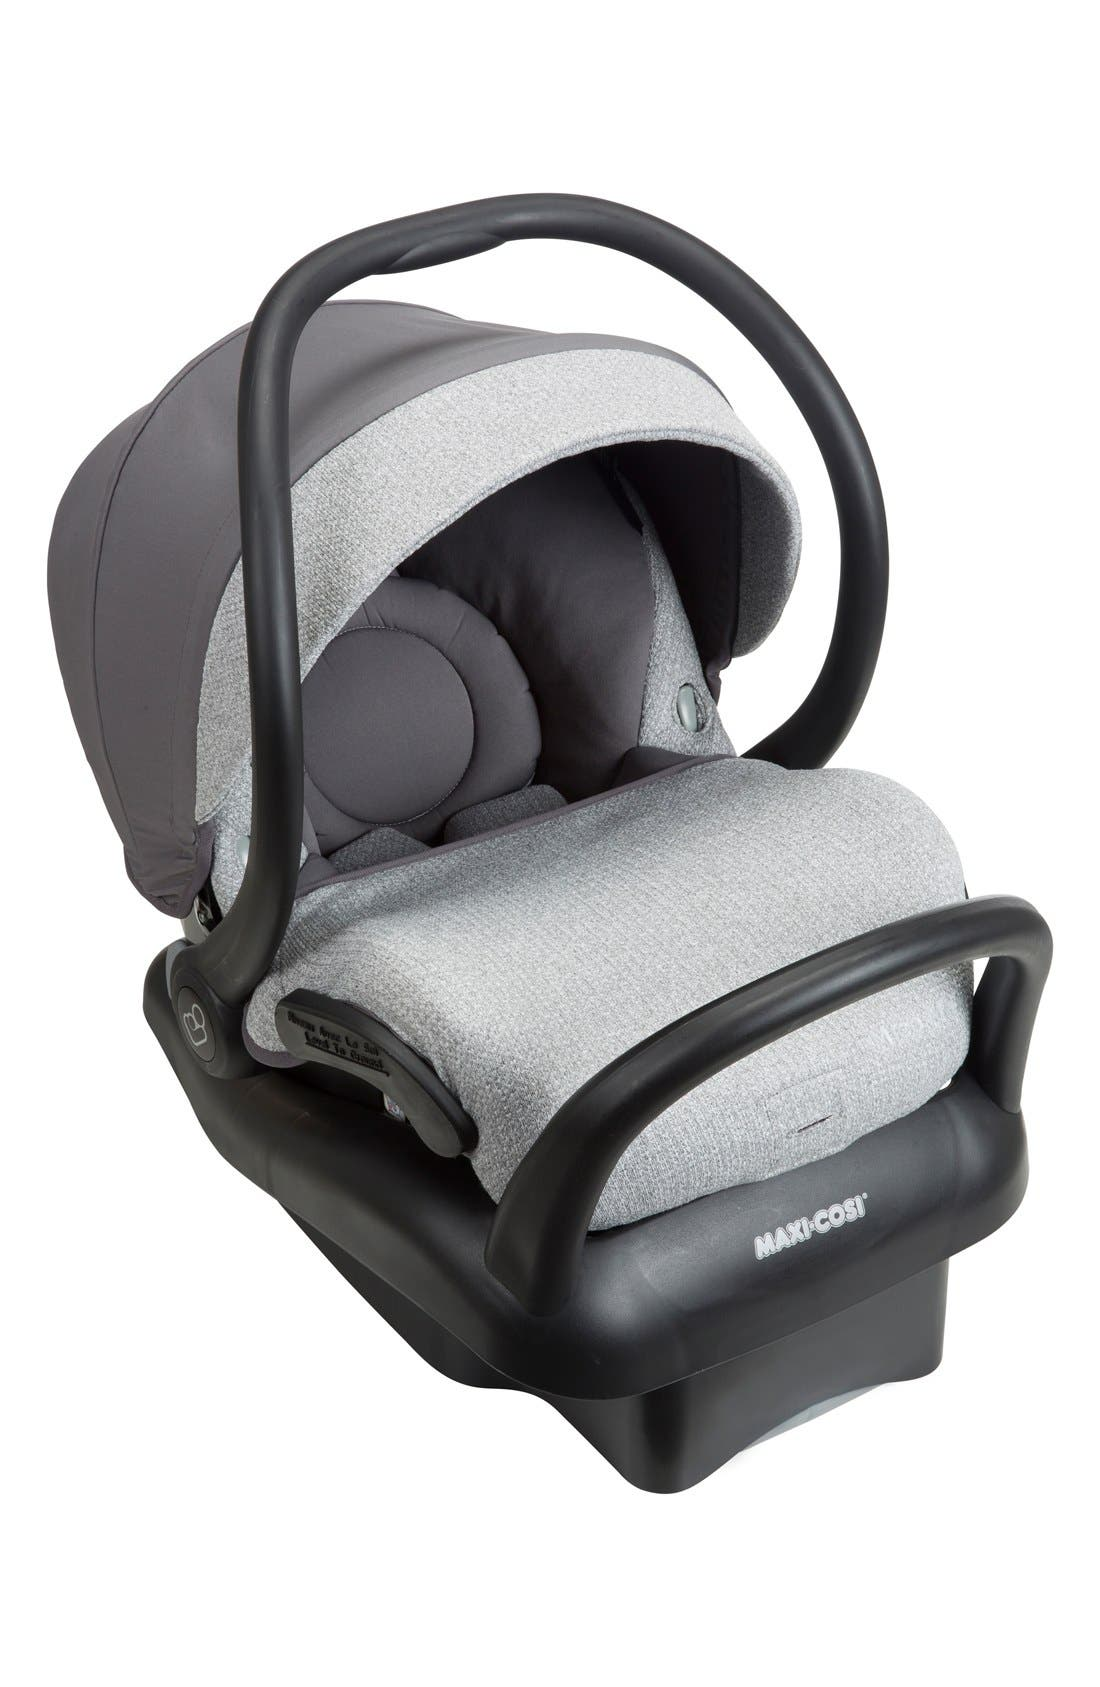 'Mico Max 30 - Sweater Knit Special Edition' Infant Car Seat,                             Alternate thumbnail 4, color,